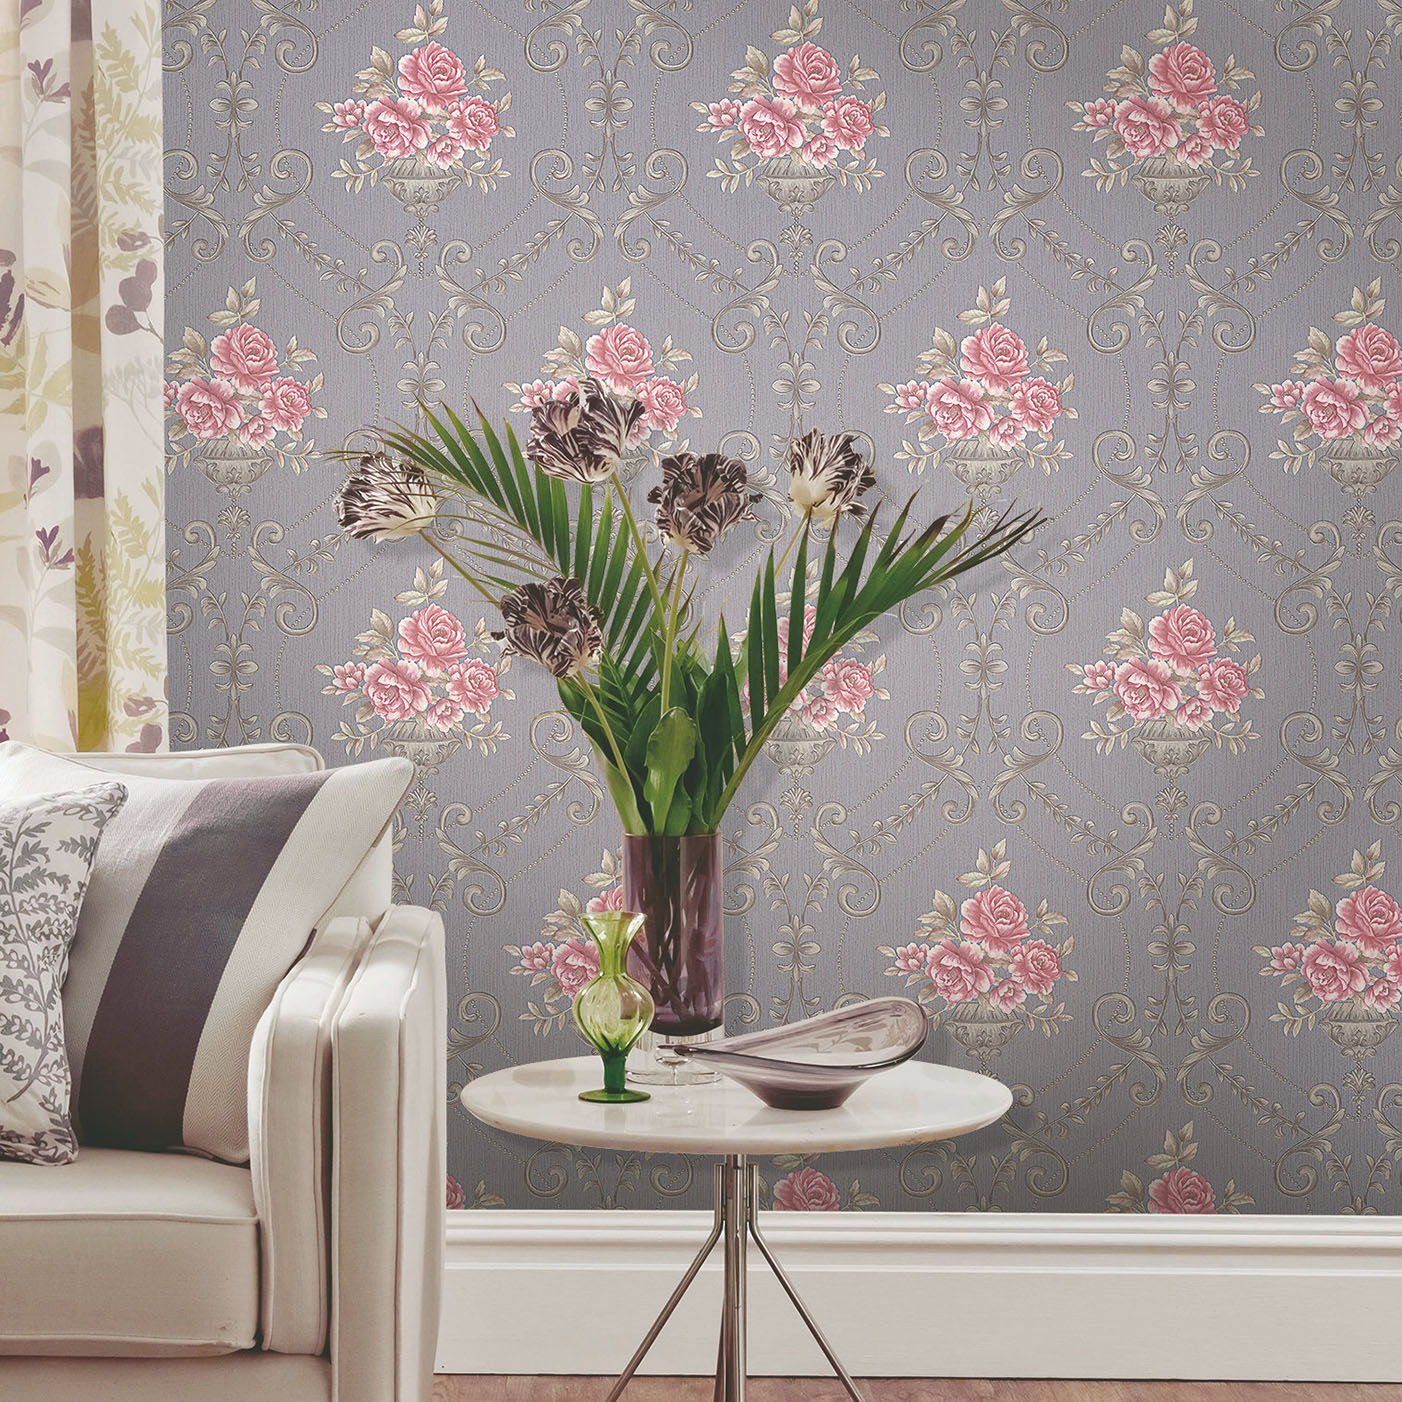 Pink flower on Lavender Wallpaper - Call: 0720271544 Wallpaper Kenya.